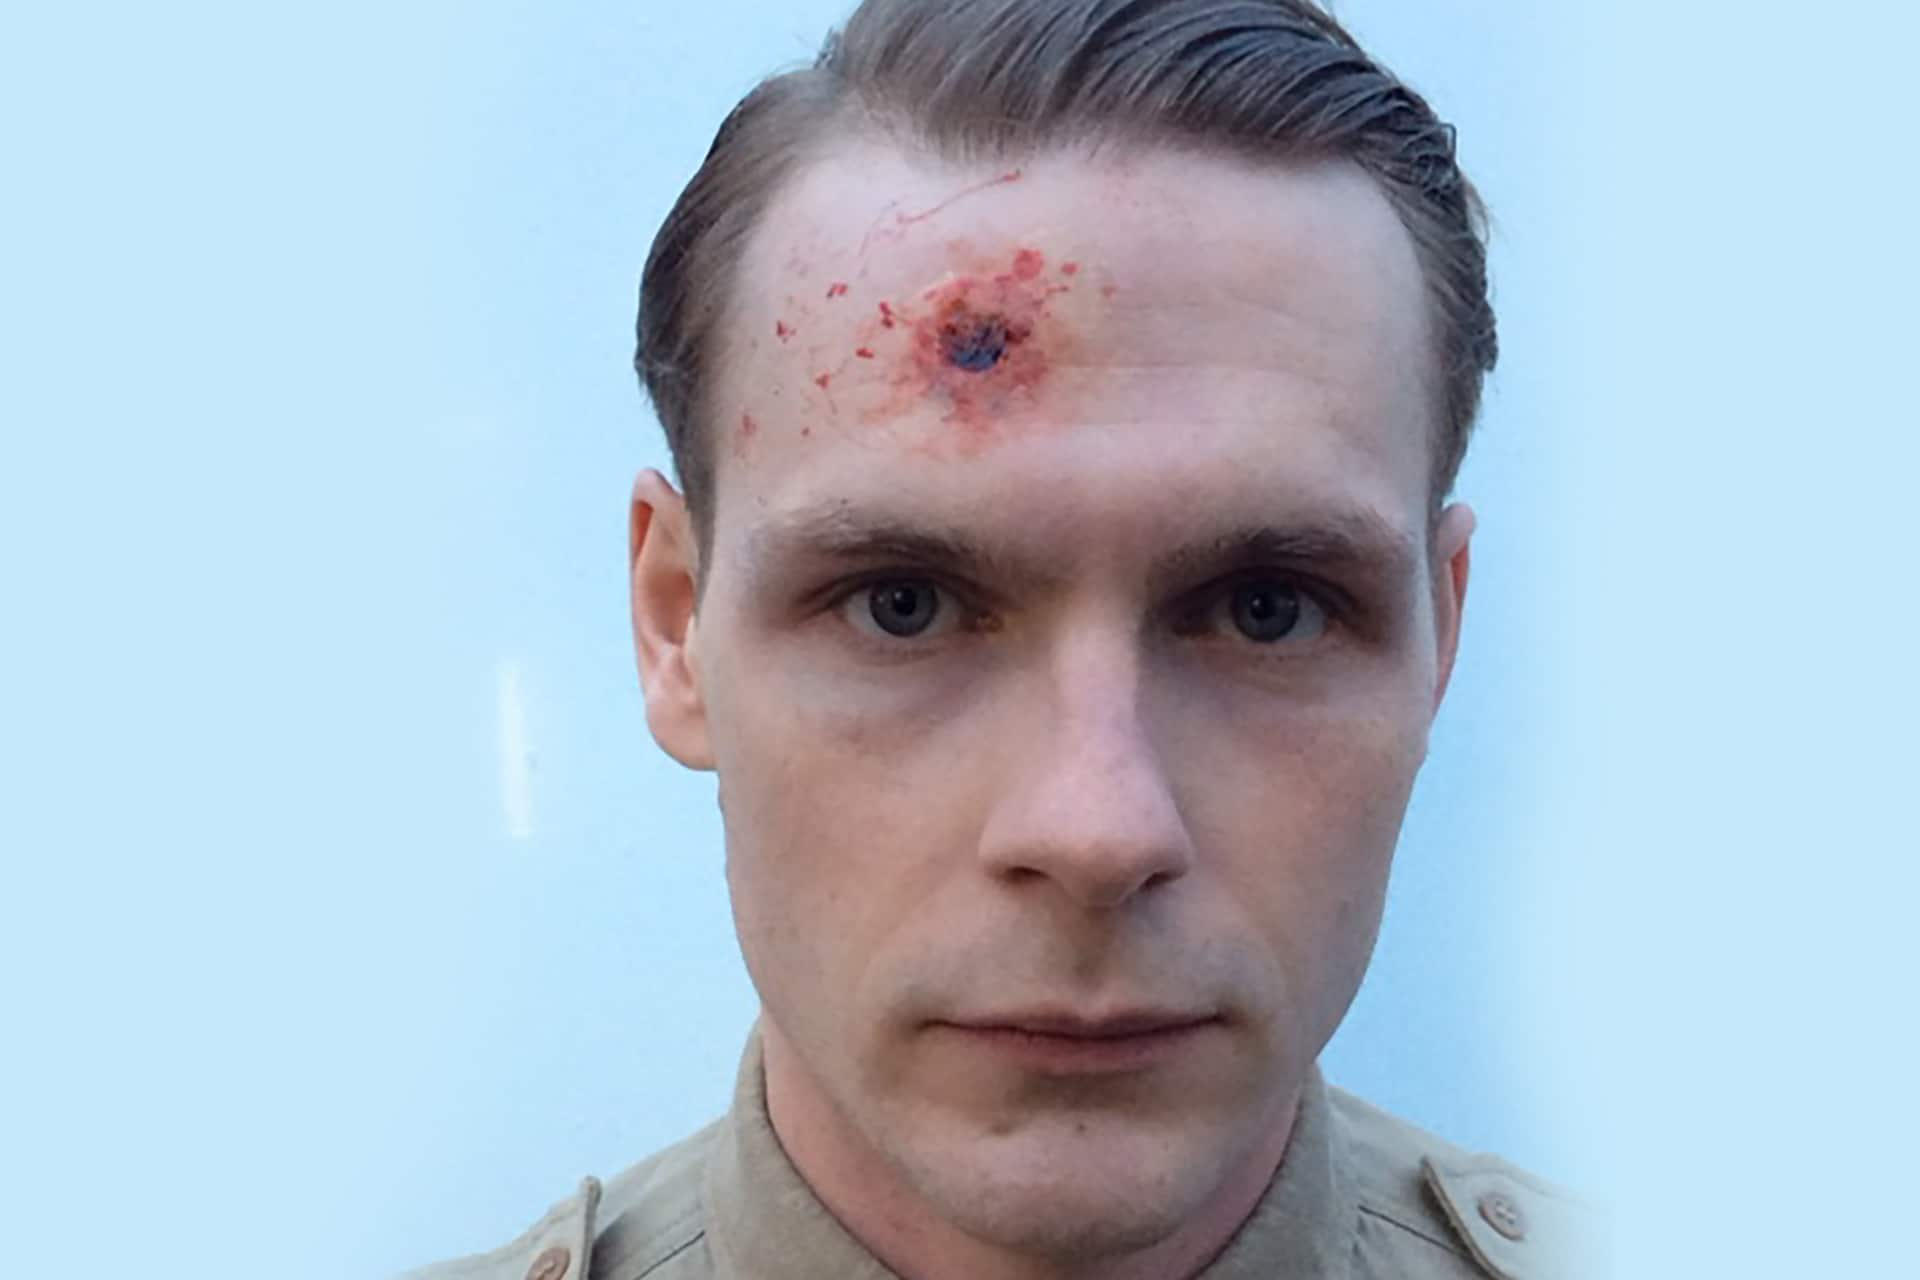 A background performer in special effects makeup as part of the show's Dieppe sequence.